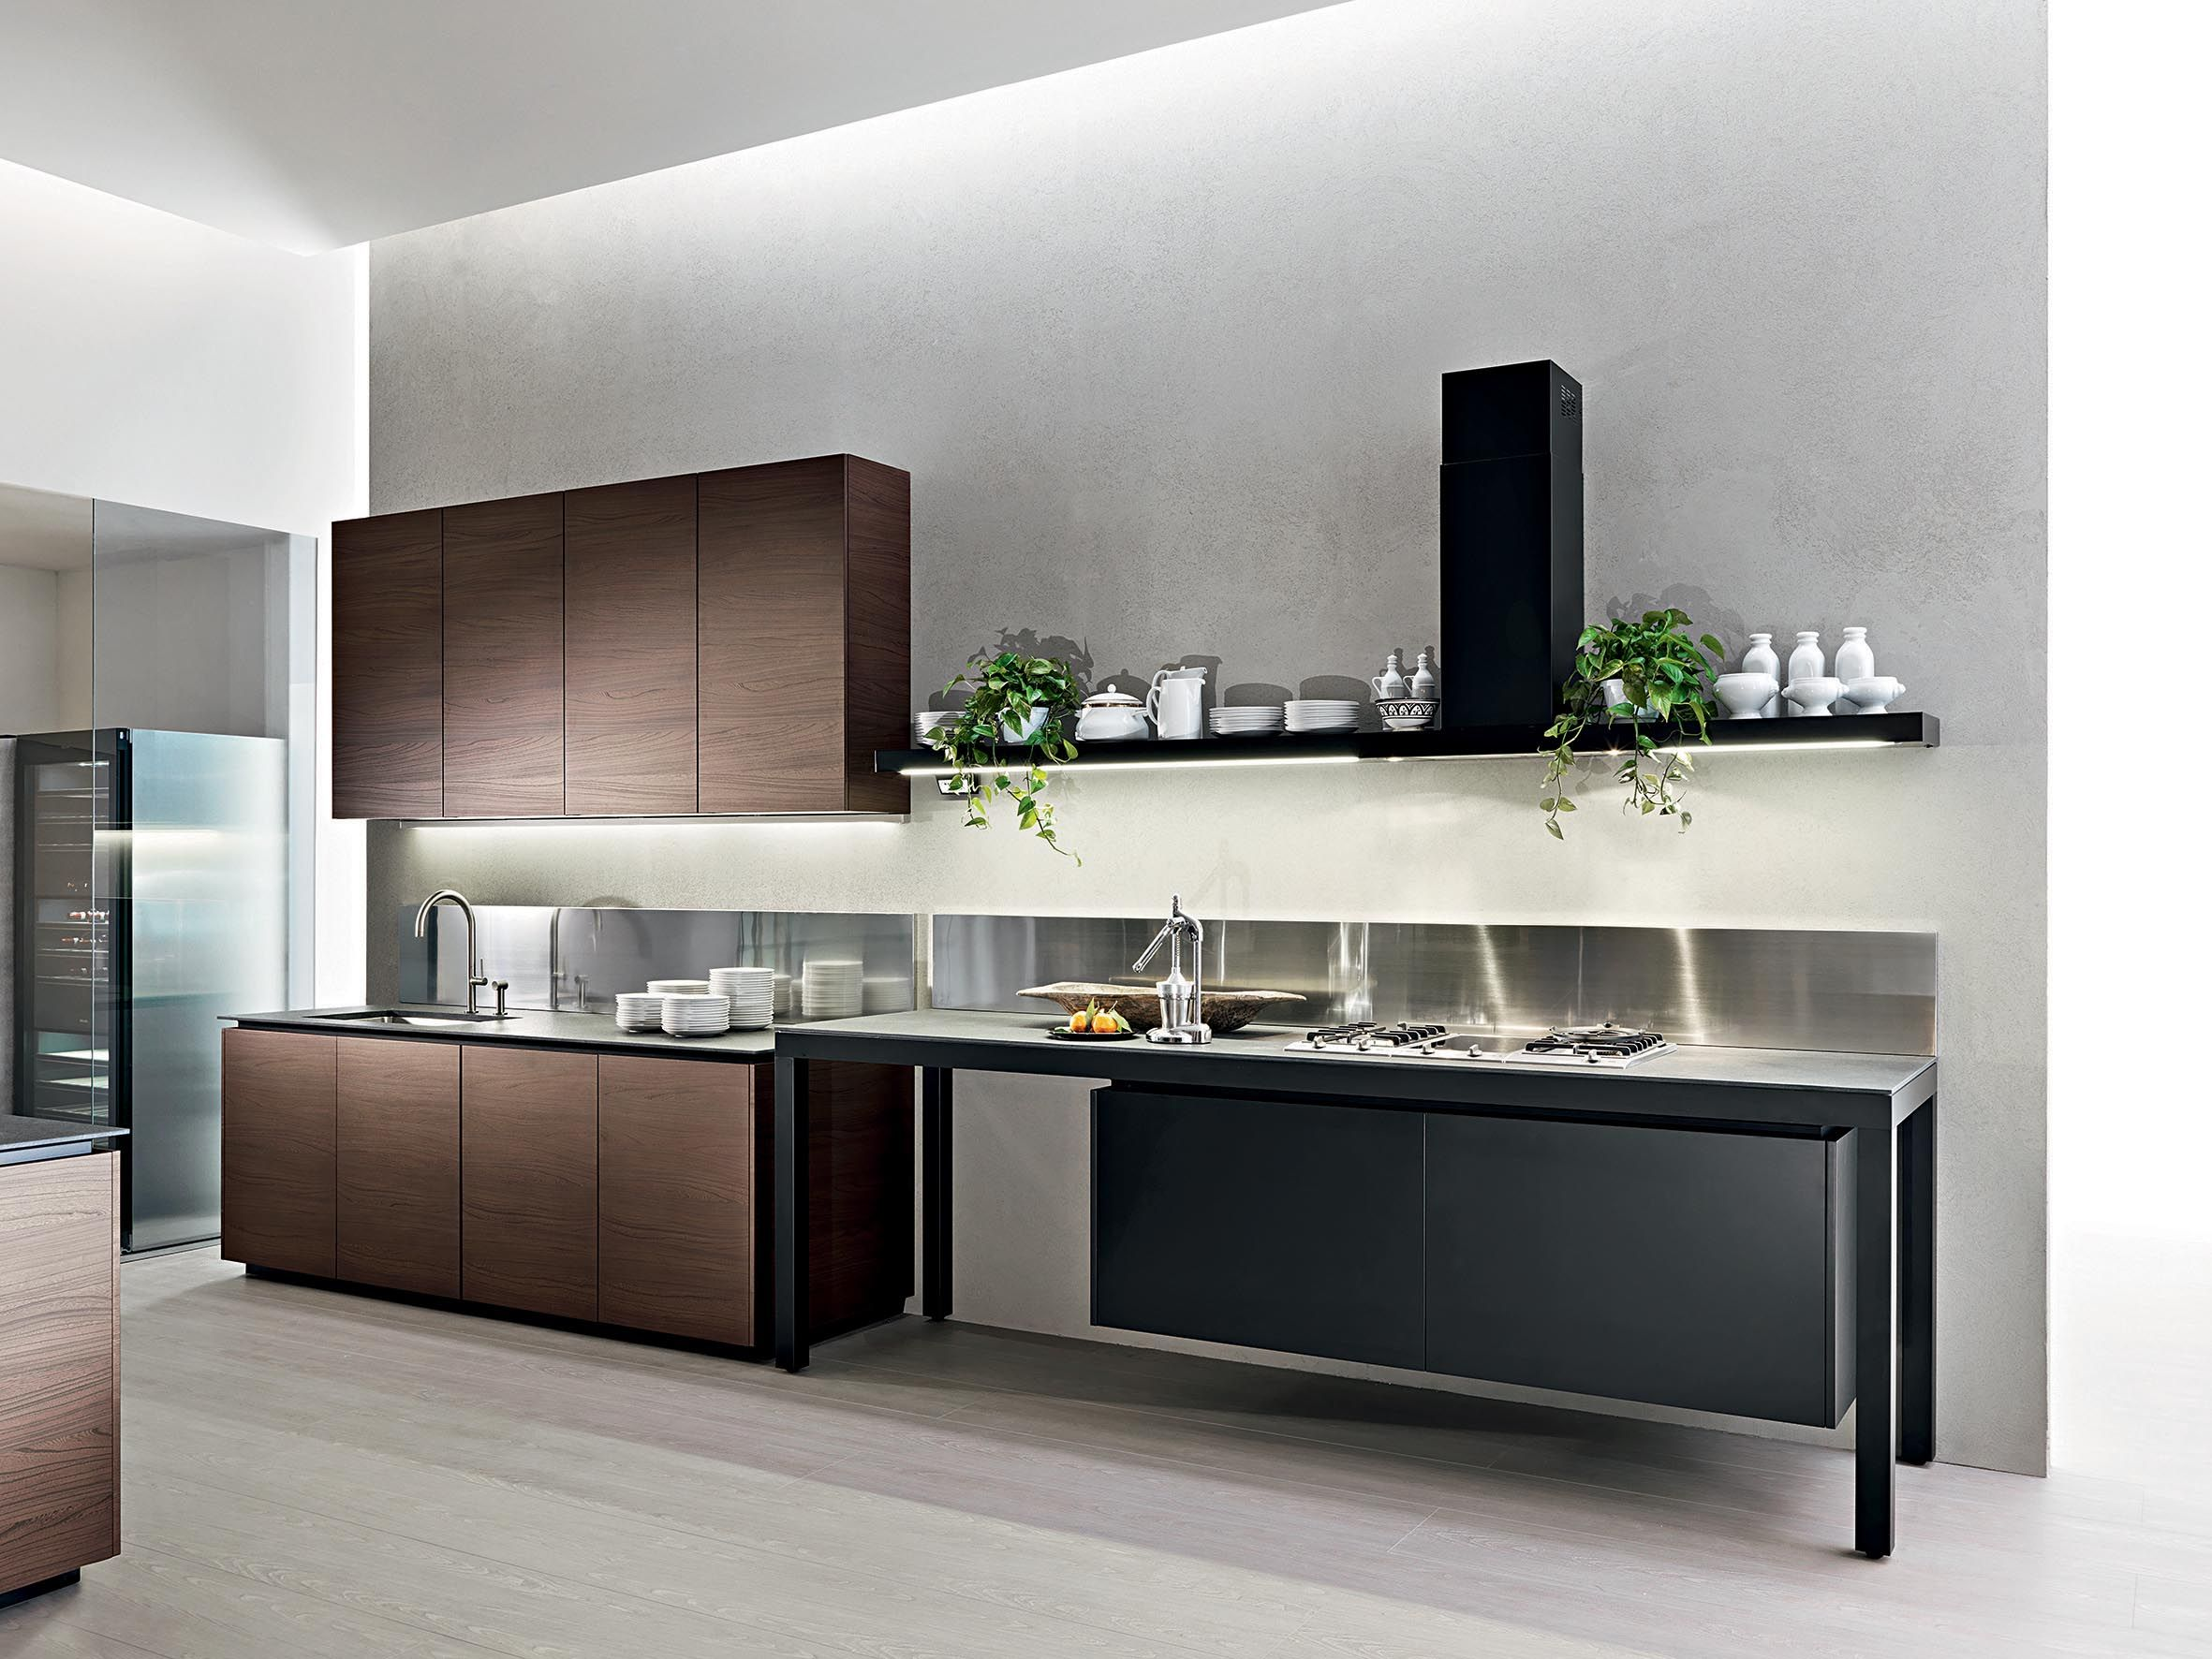 banco kitchens dada kitchens millwork joinery pinterest cocinas. Black Bedroom Furniture Sets. Home Design Ideas